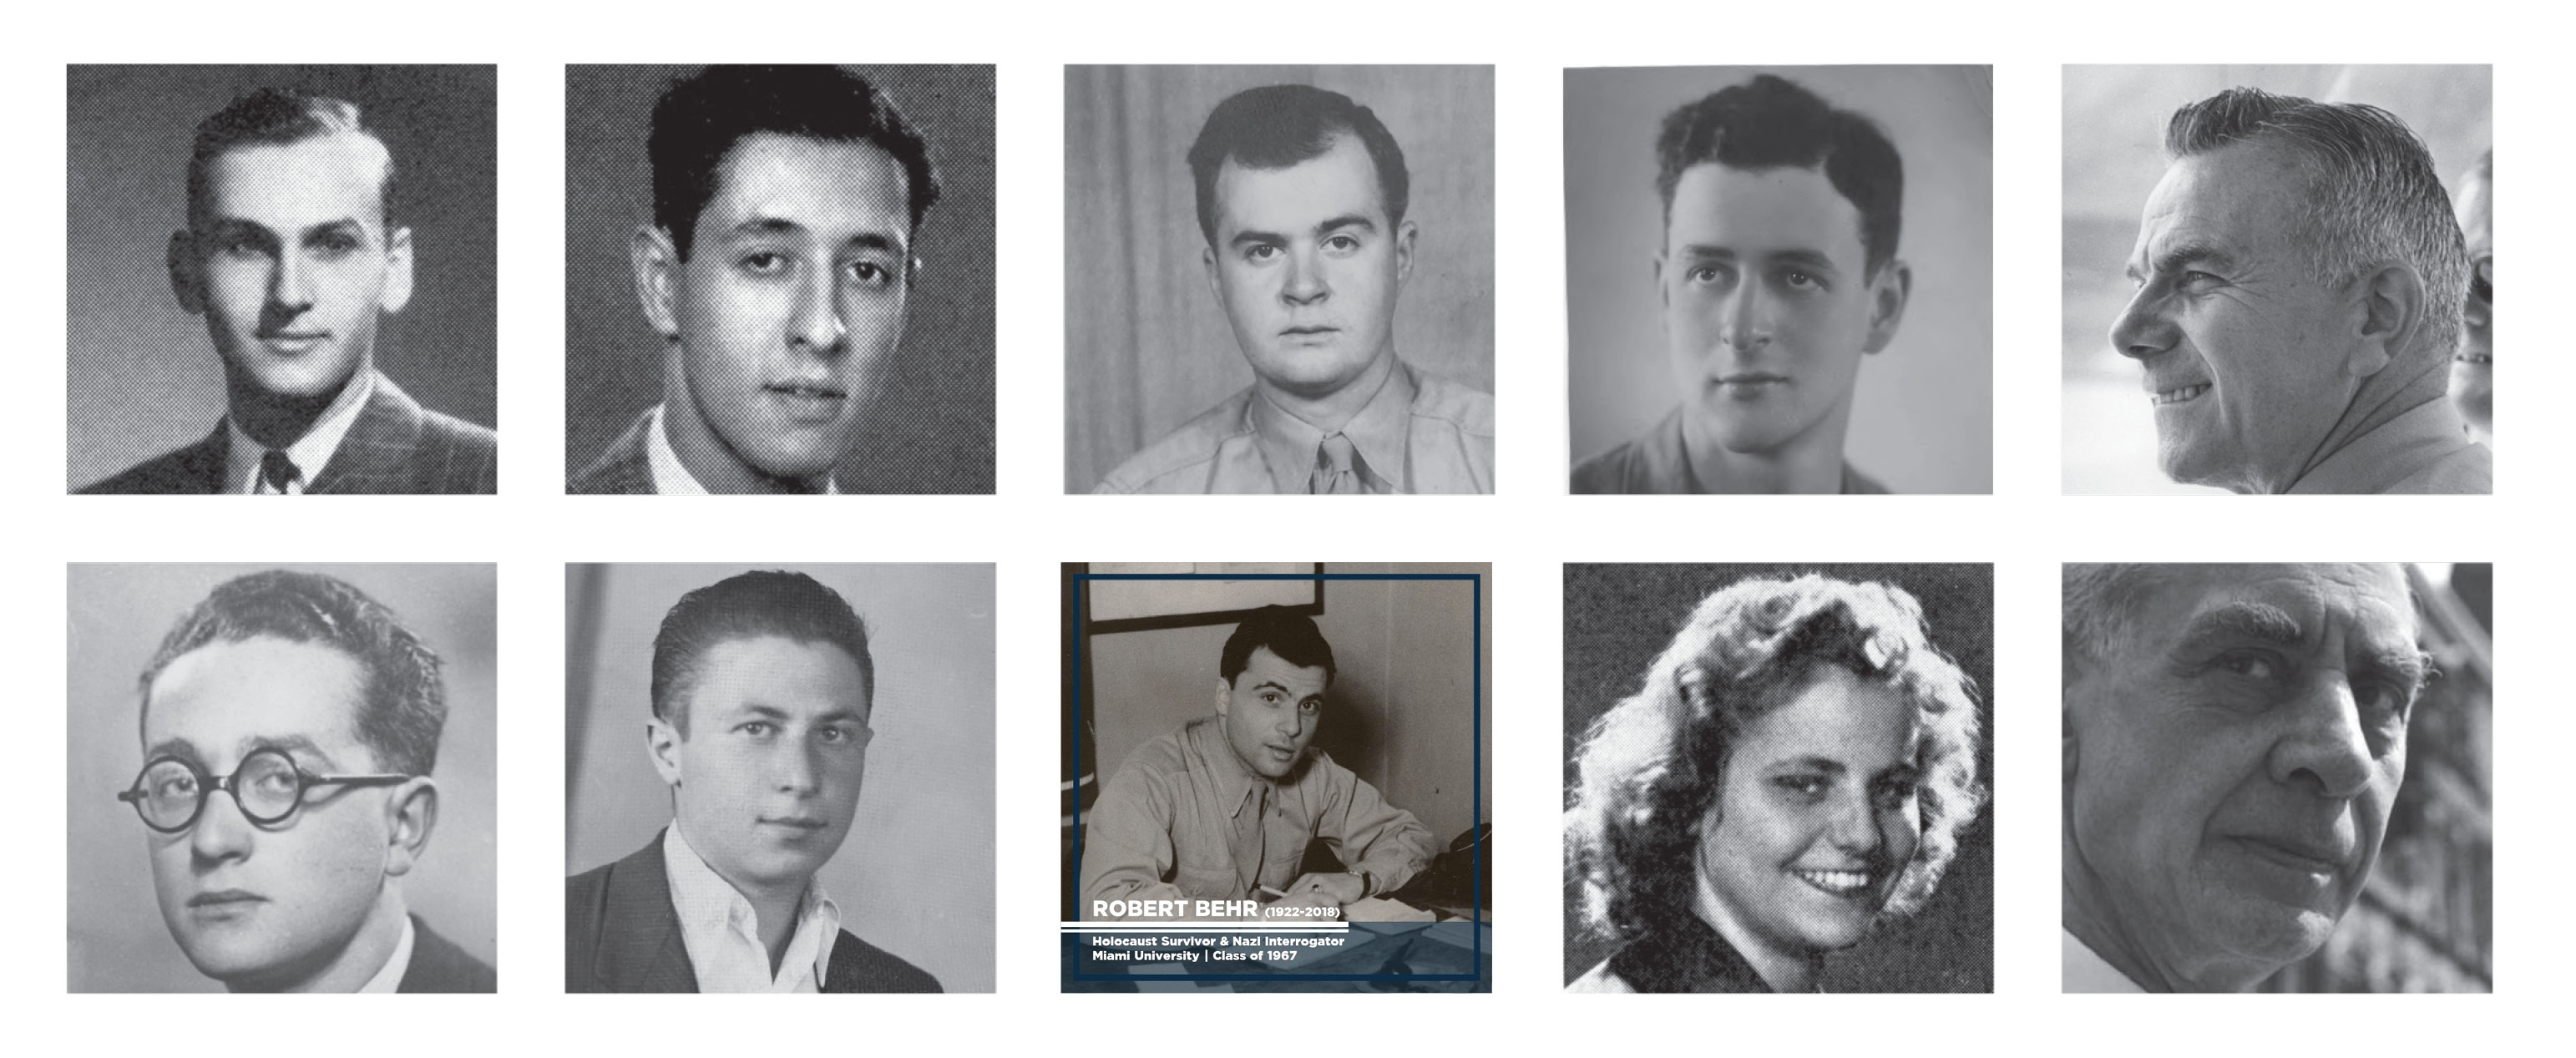 "Nine black and white portraits of the alumni and faculty featured in the exhibition Bearing Witness. Robert Behr's image is outlined in blue with the text ""Robert Behr (1922 - 2018). Holocaust survivor & Nazi interrogator. Miami University class of 1967."